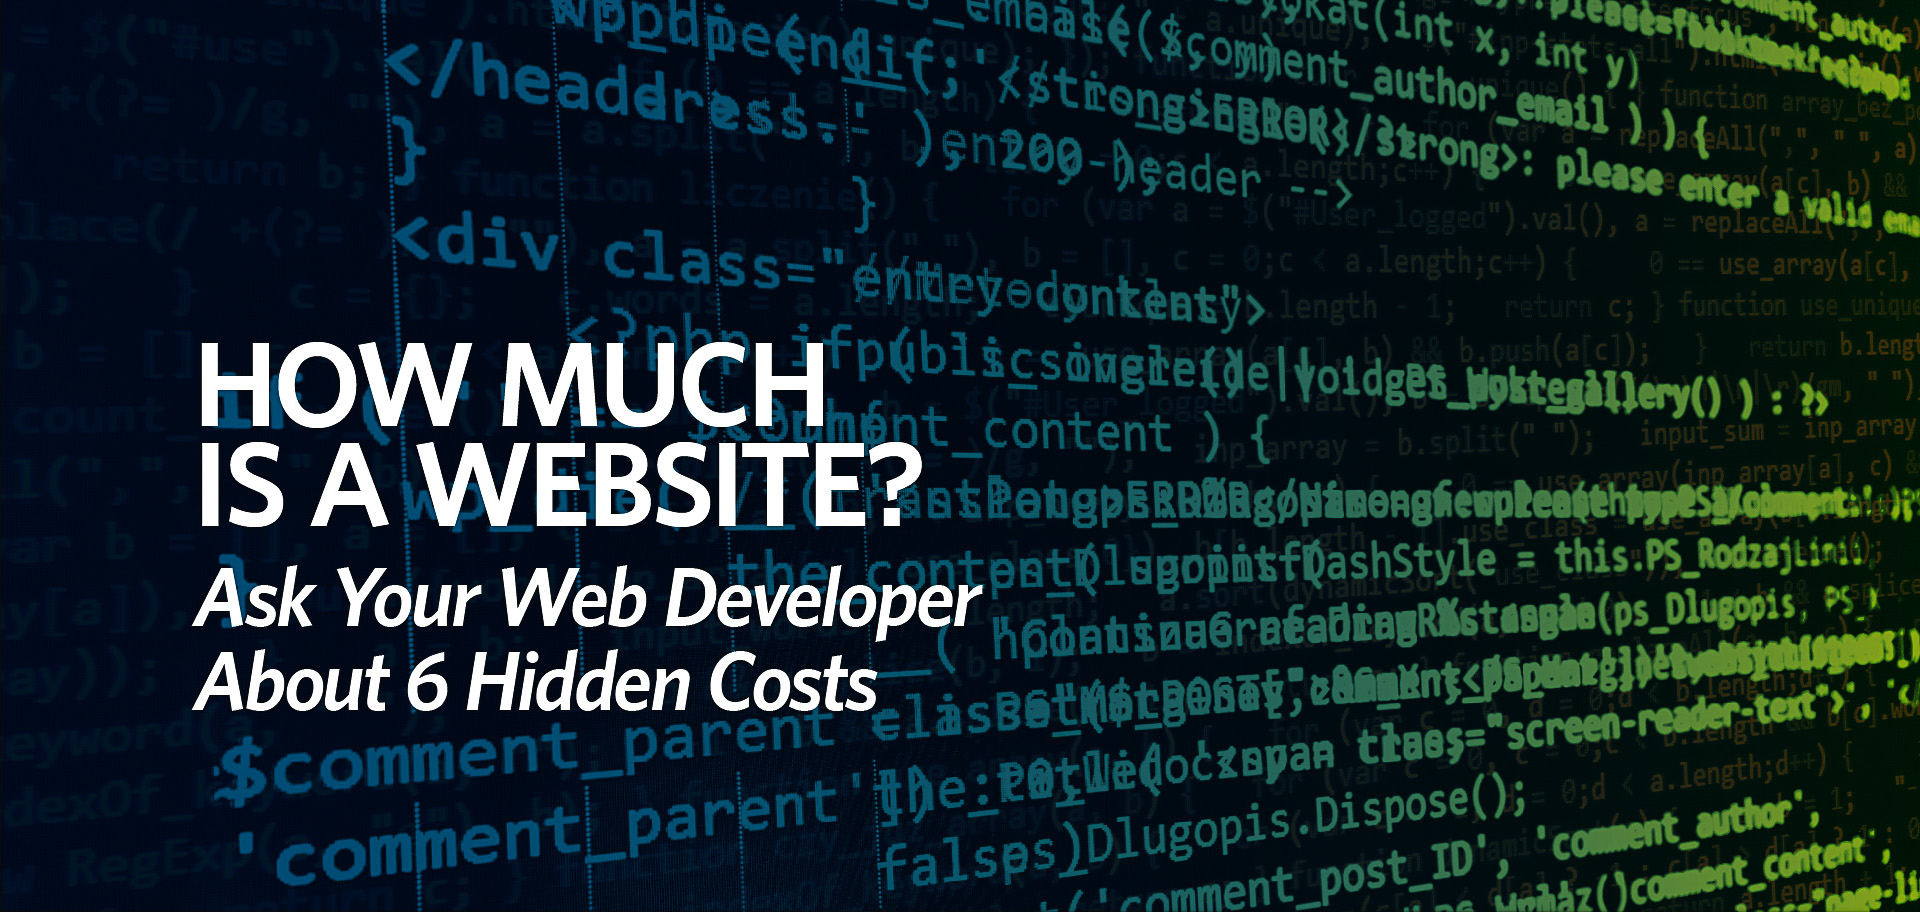 web developer, how much is a website, hidden costs of websites, Kettle Fire Creative blog web developer How Much is a Website? Ask Your Web Developer About 6 Hidden Costs webcosts fi